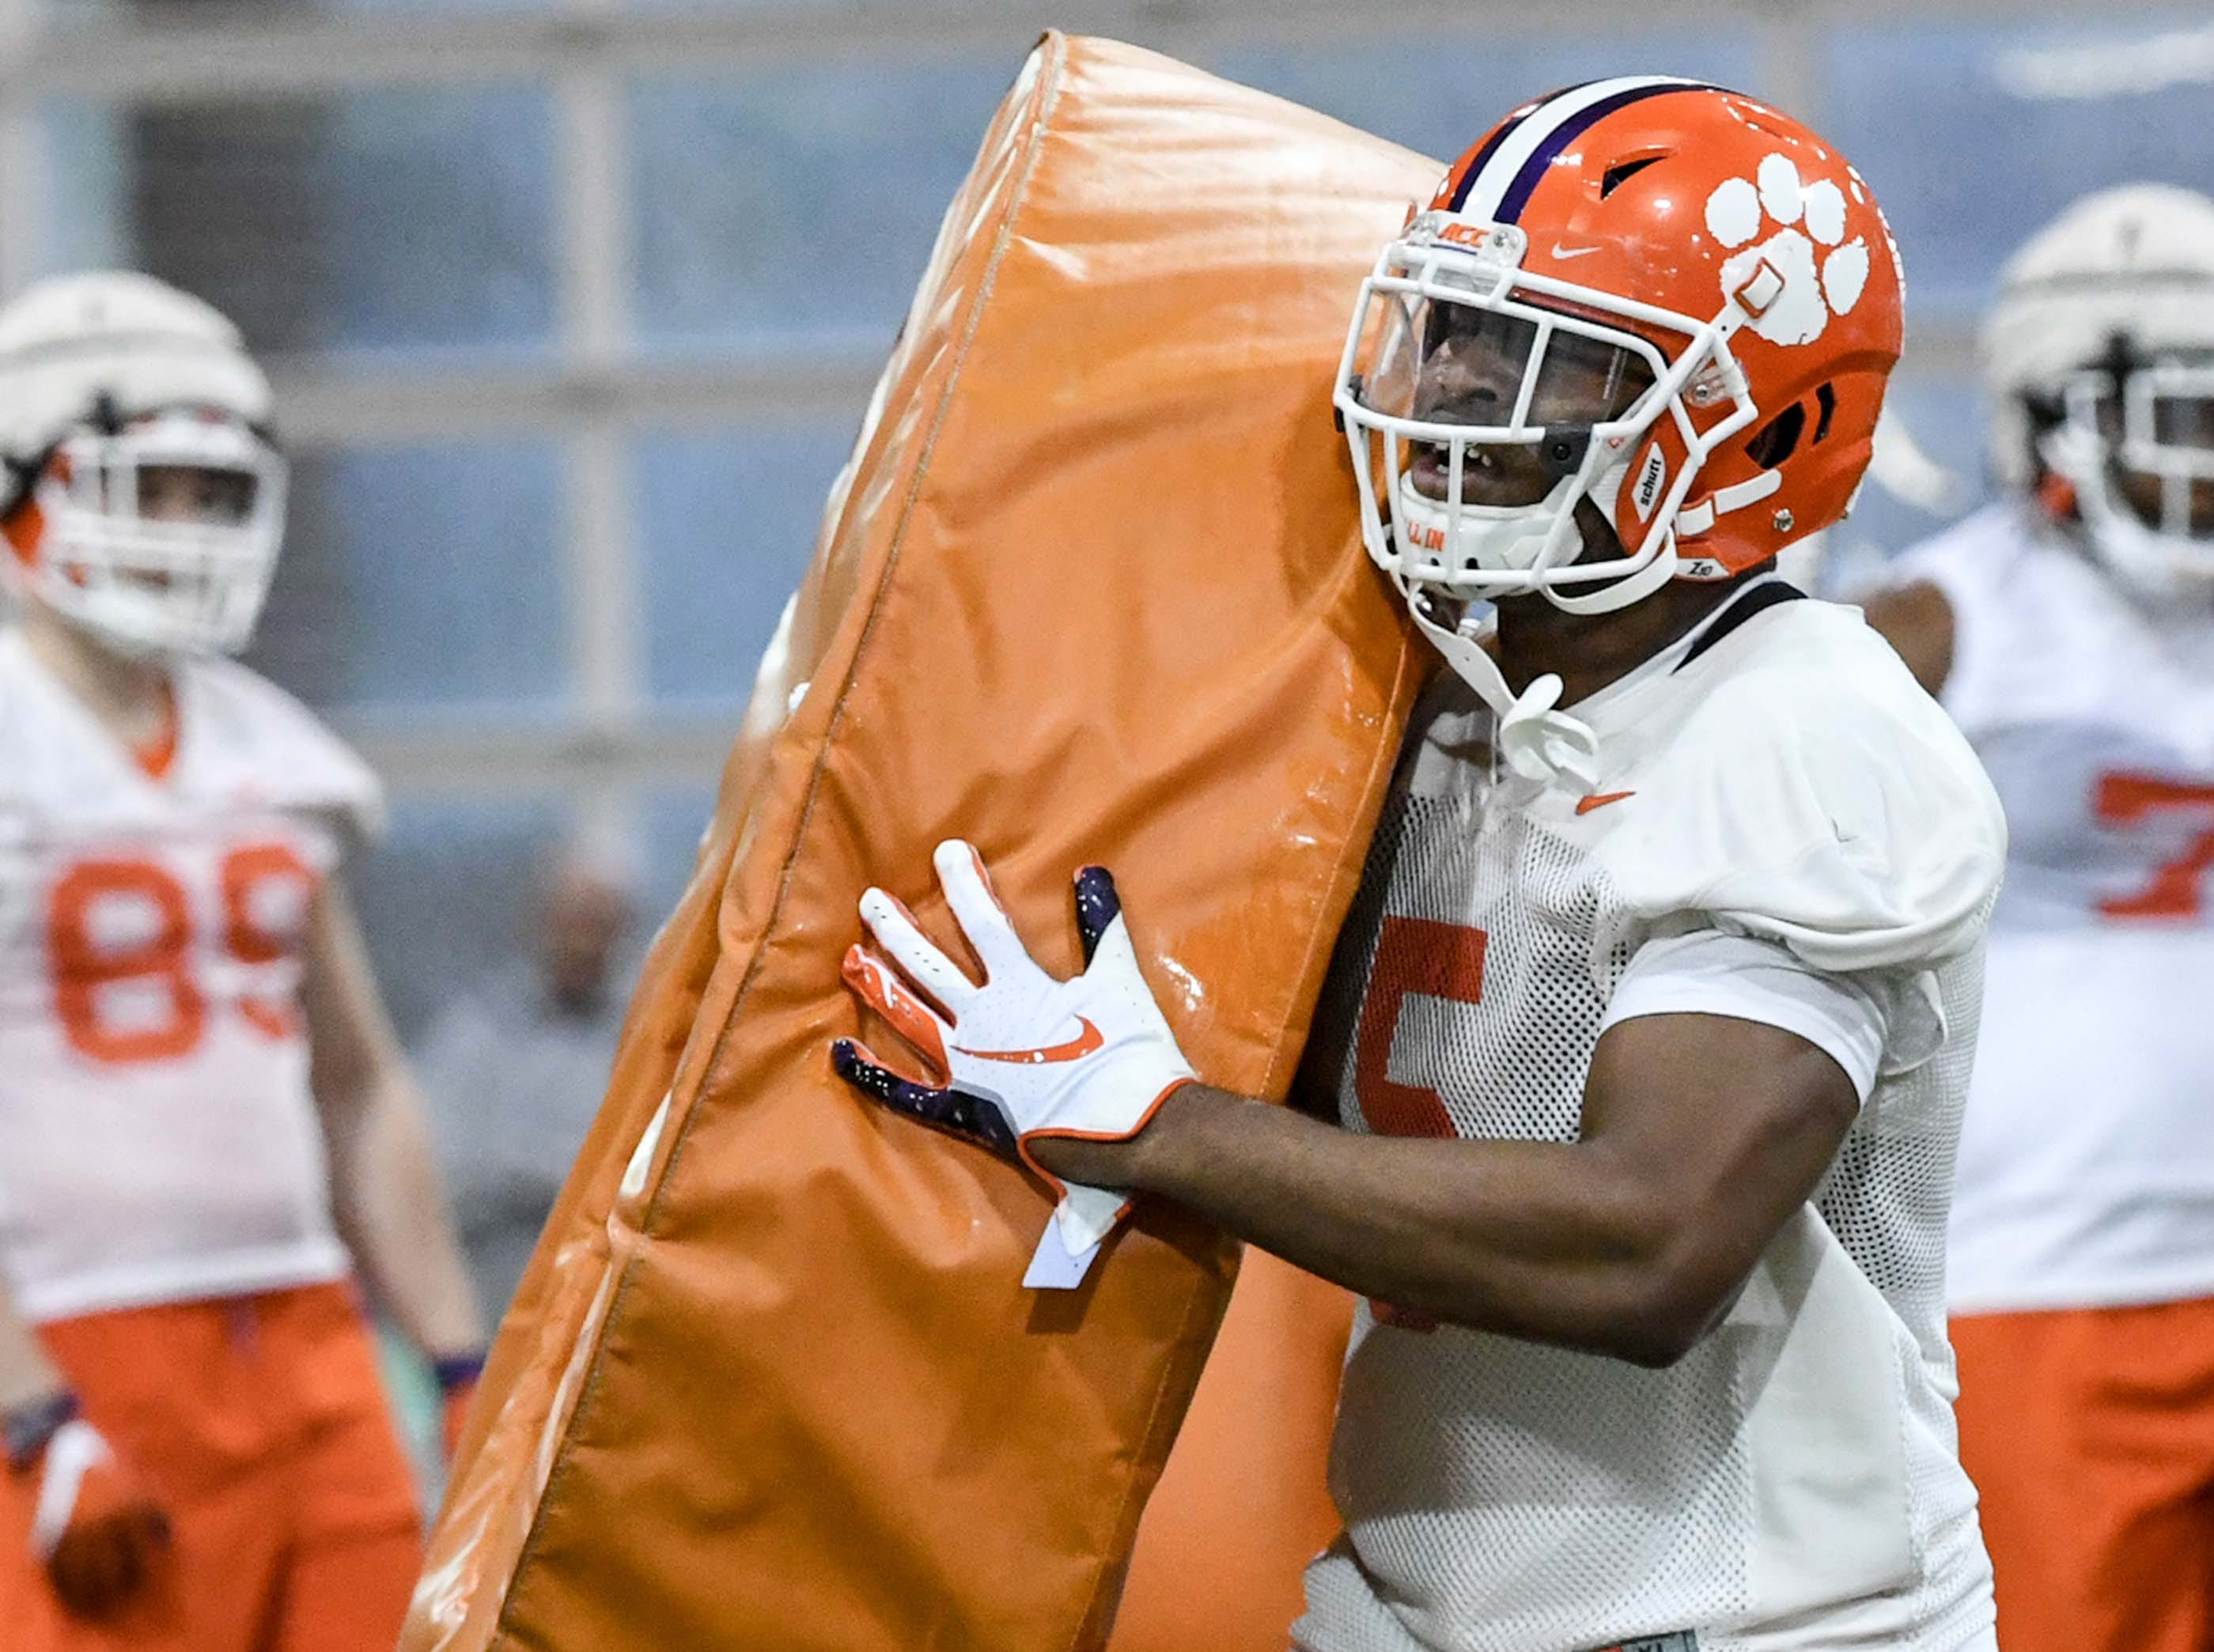 Clemson linebacker Shaq Smith (5) hits a pad during practice at the Poe Indoor Facility in Clemson Friday.